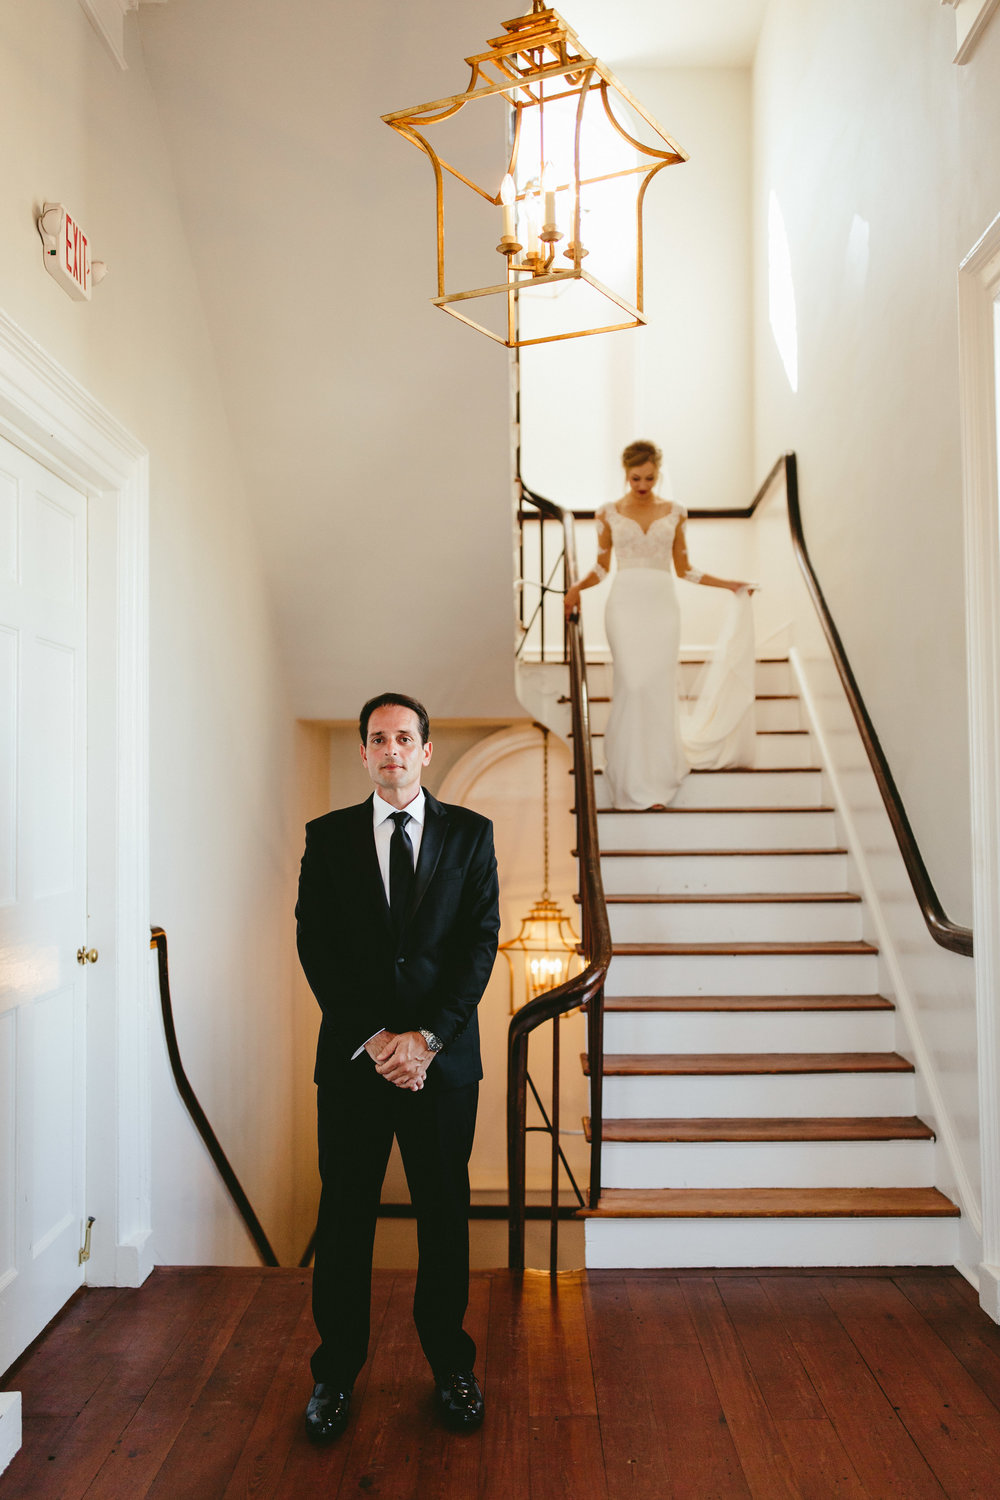 first look, first look inspiration, wedding first look, staircase first look, bride surprises groom, first look inspiration, Philadelphia wedding, destination wedding, Brooklyn wedding, Brooklyn elopement, Philadelphia elopement, Gadsden house Charleston South Carolina, southern wedding inspiration, unique wedding inspiration, wedding inspiration, destination wedding inspiration, wedding ideas, lace wedding dresses, classy wedding ideas